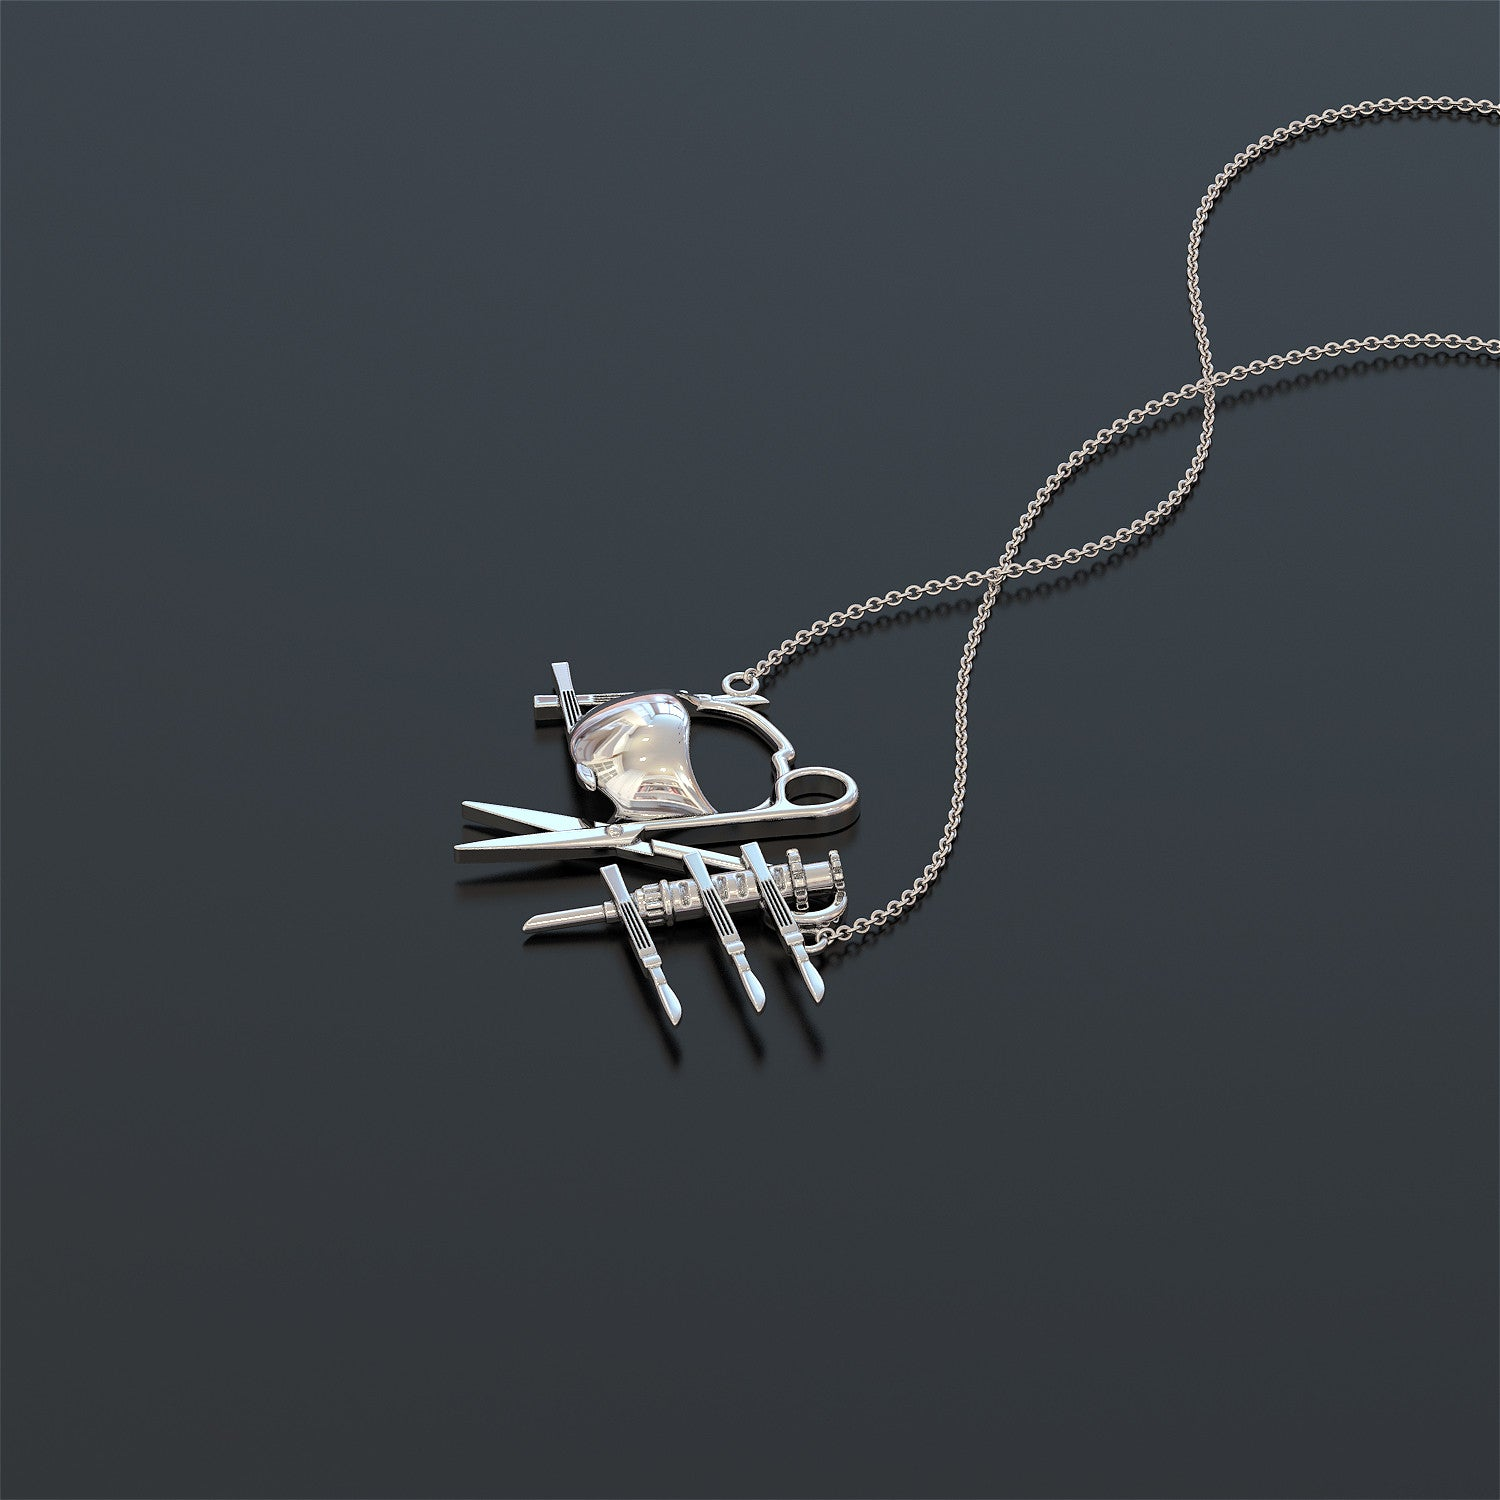 Limited Edition - Surgical Tech Necklace - LOVE